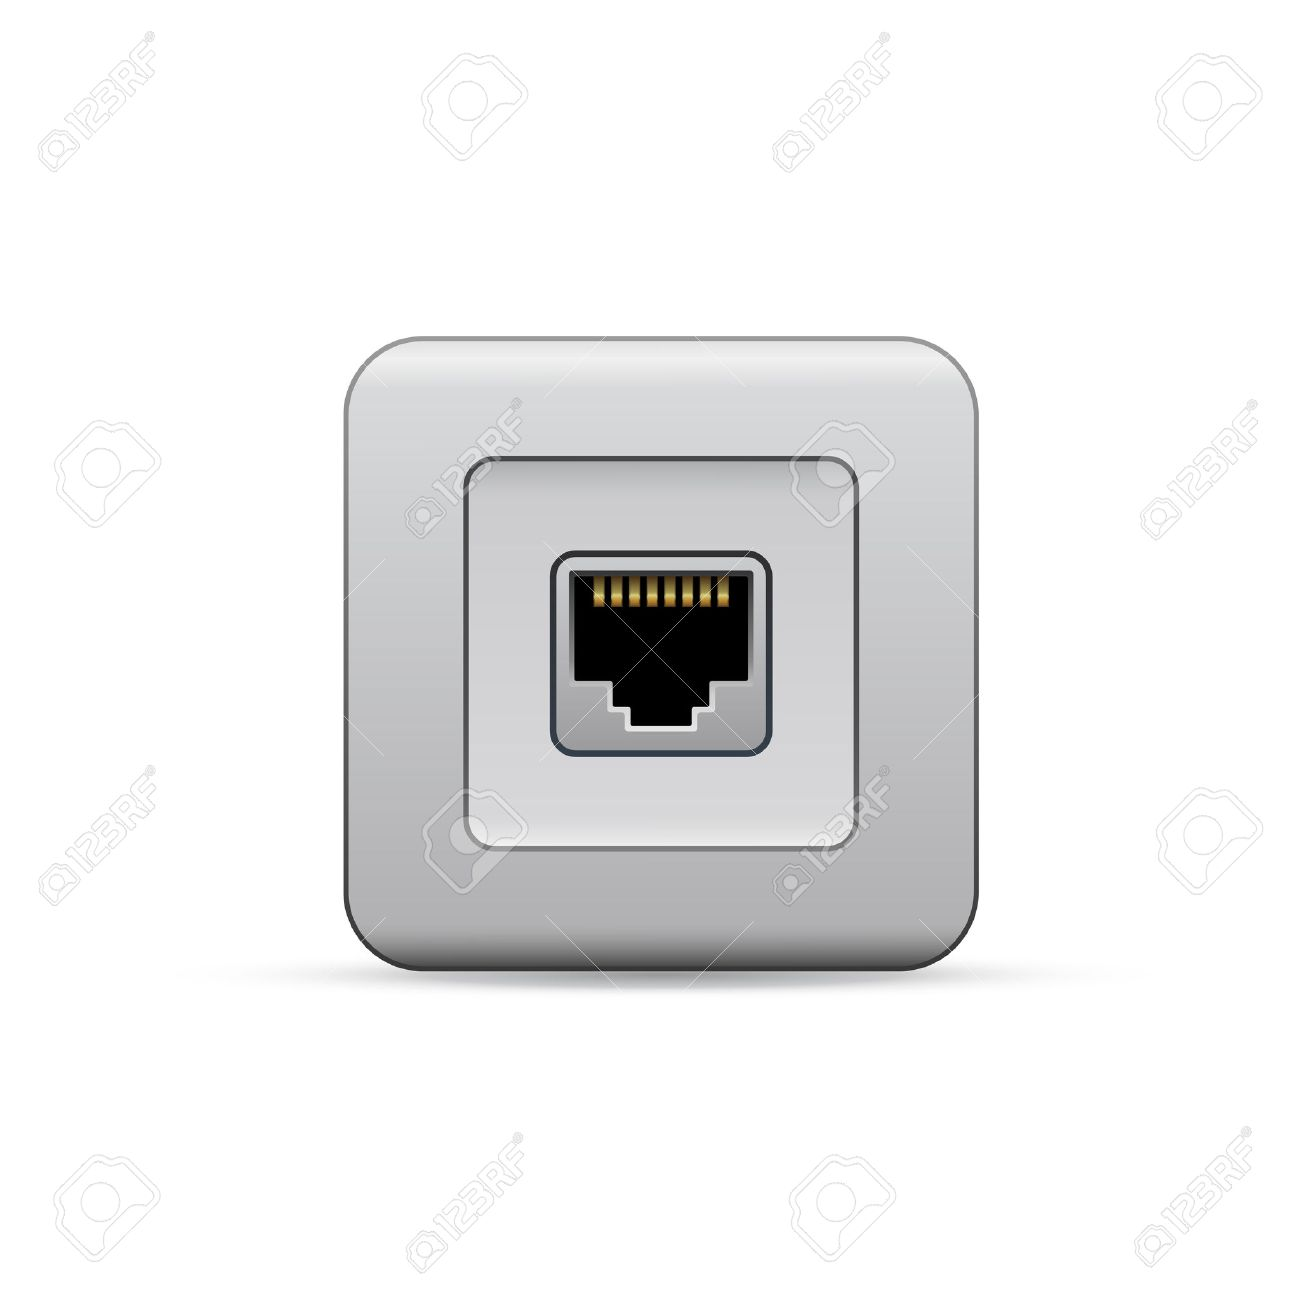 Port Network Network Ethernet Port Network Router Or Switch Icon